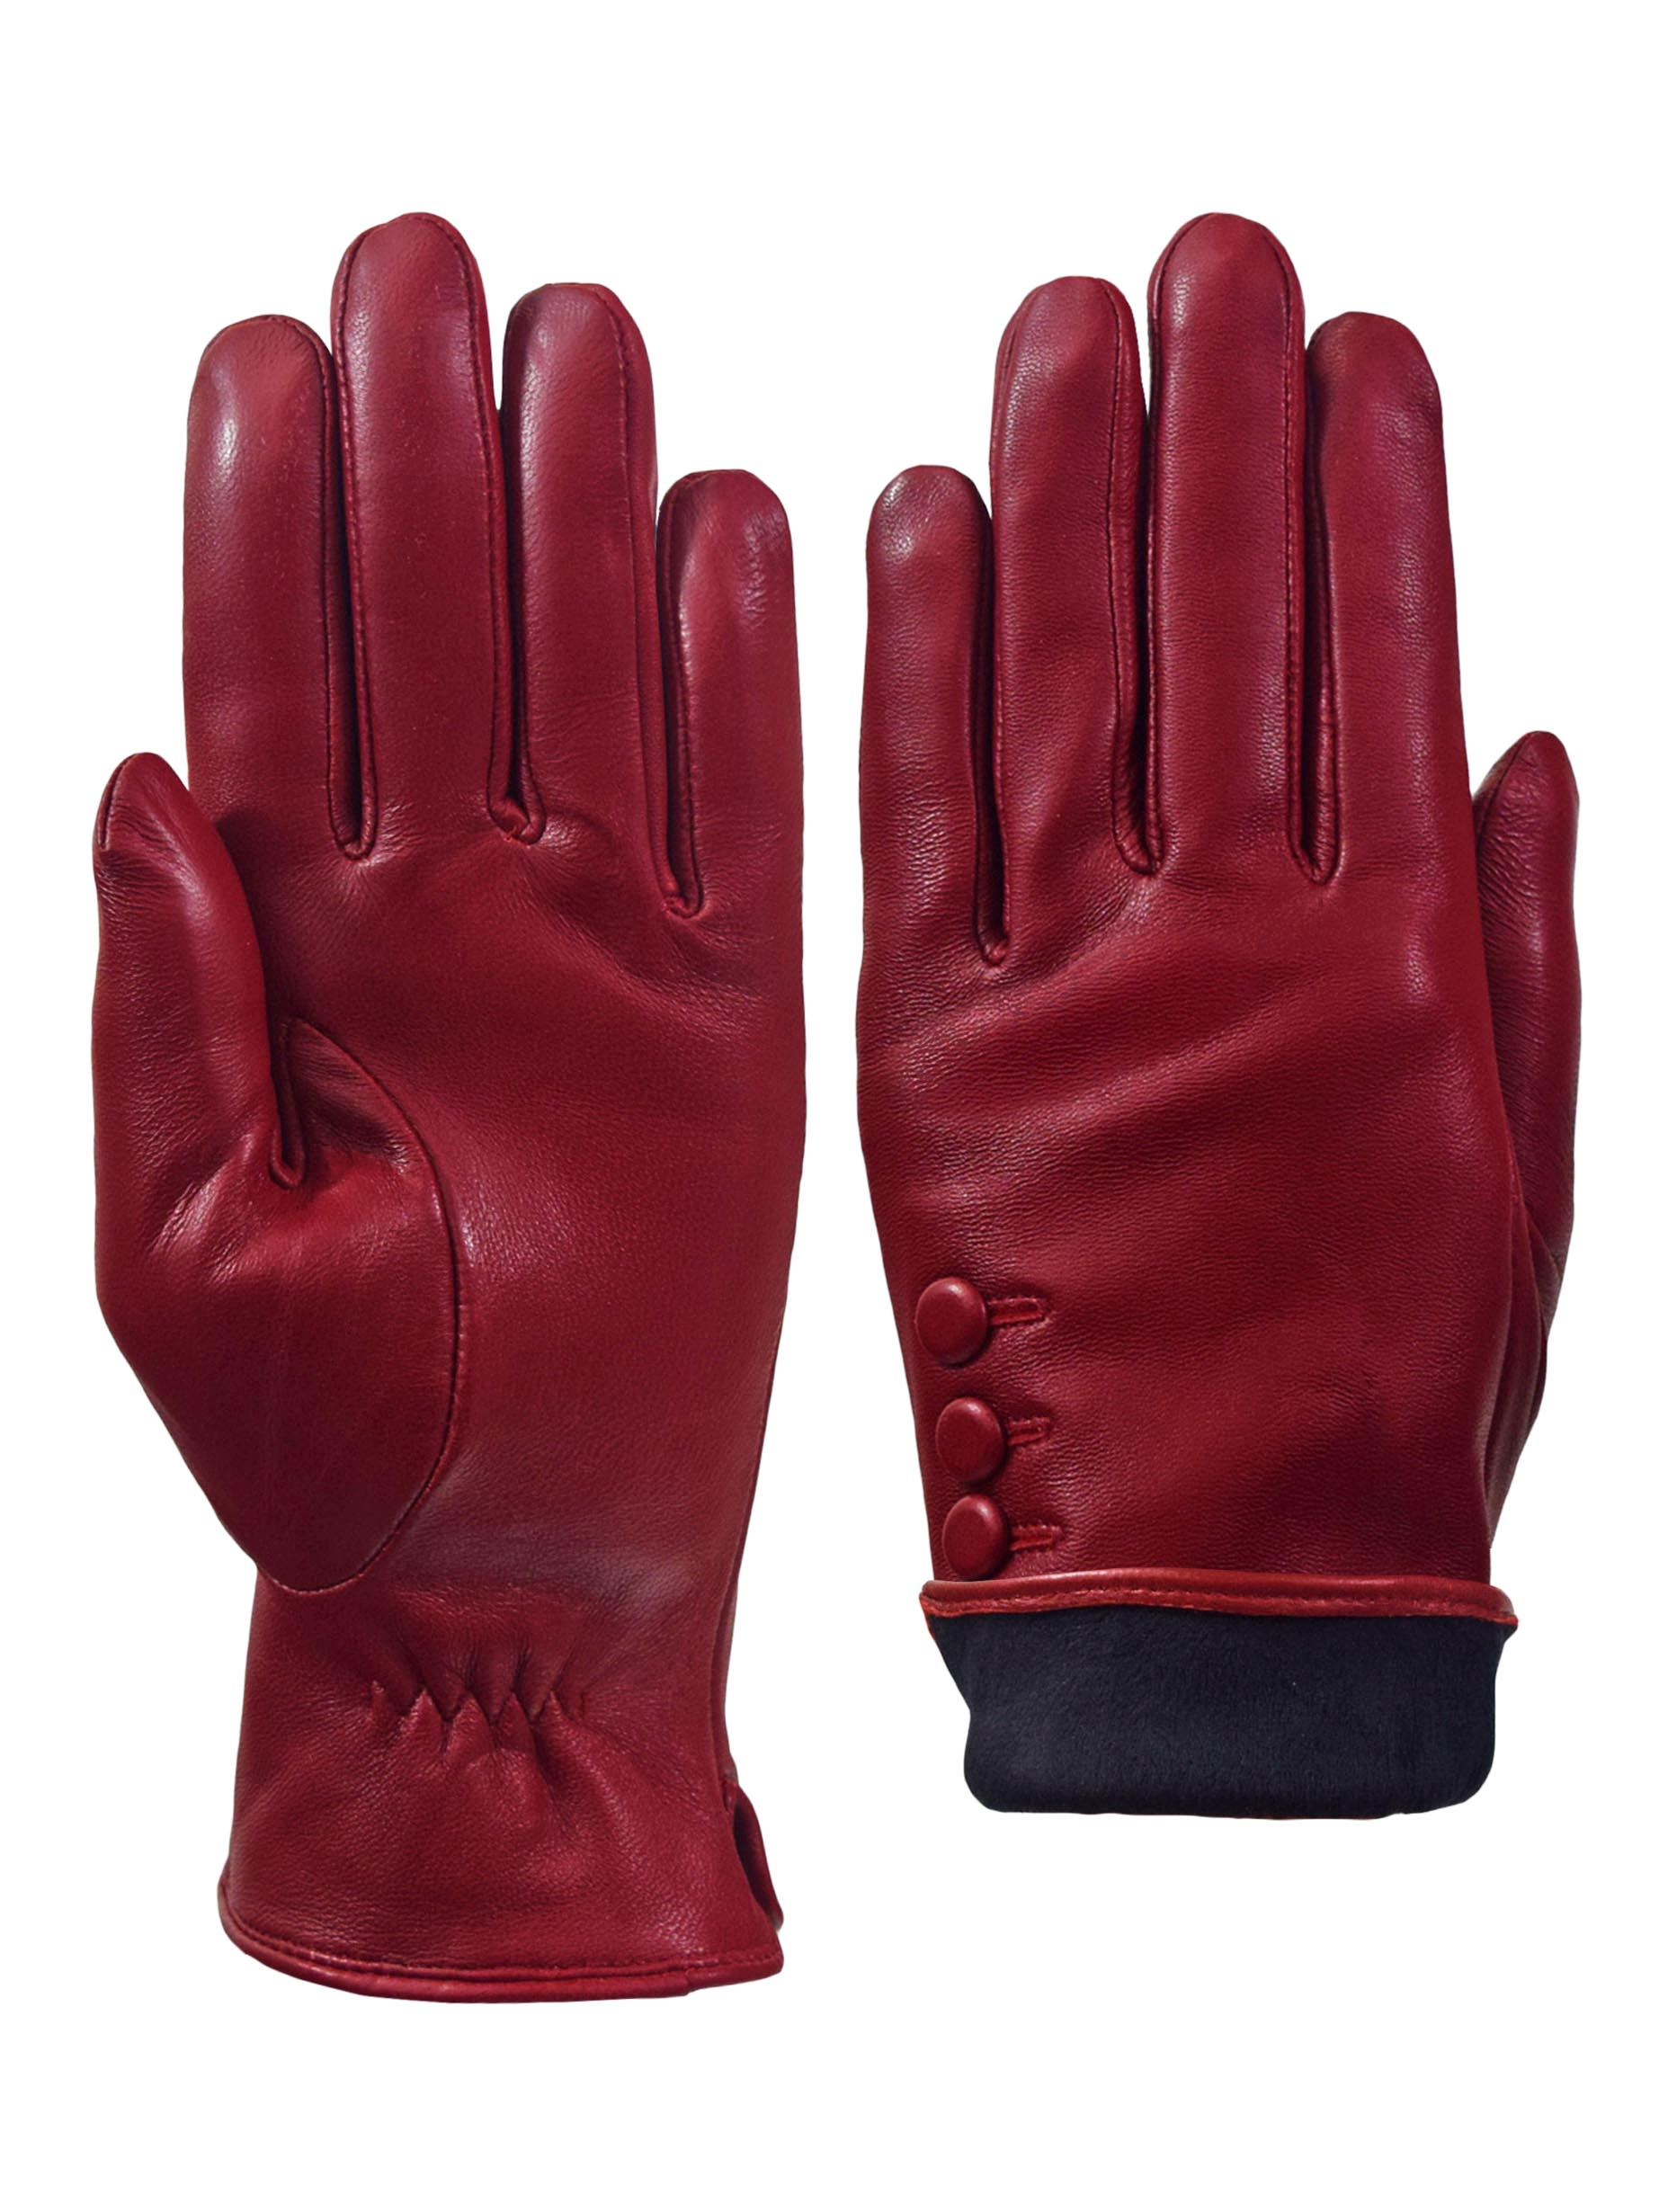 thumbnail 6 - Giromy-Samoni-Womens-Warm-Winter-Plush-Lined-Leather-Driving-Gloves-Red